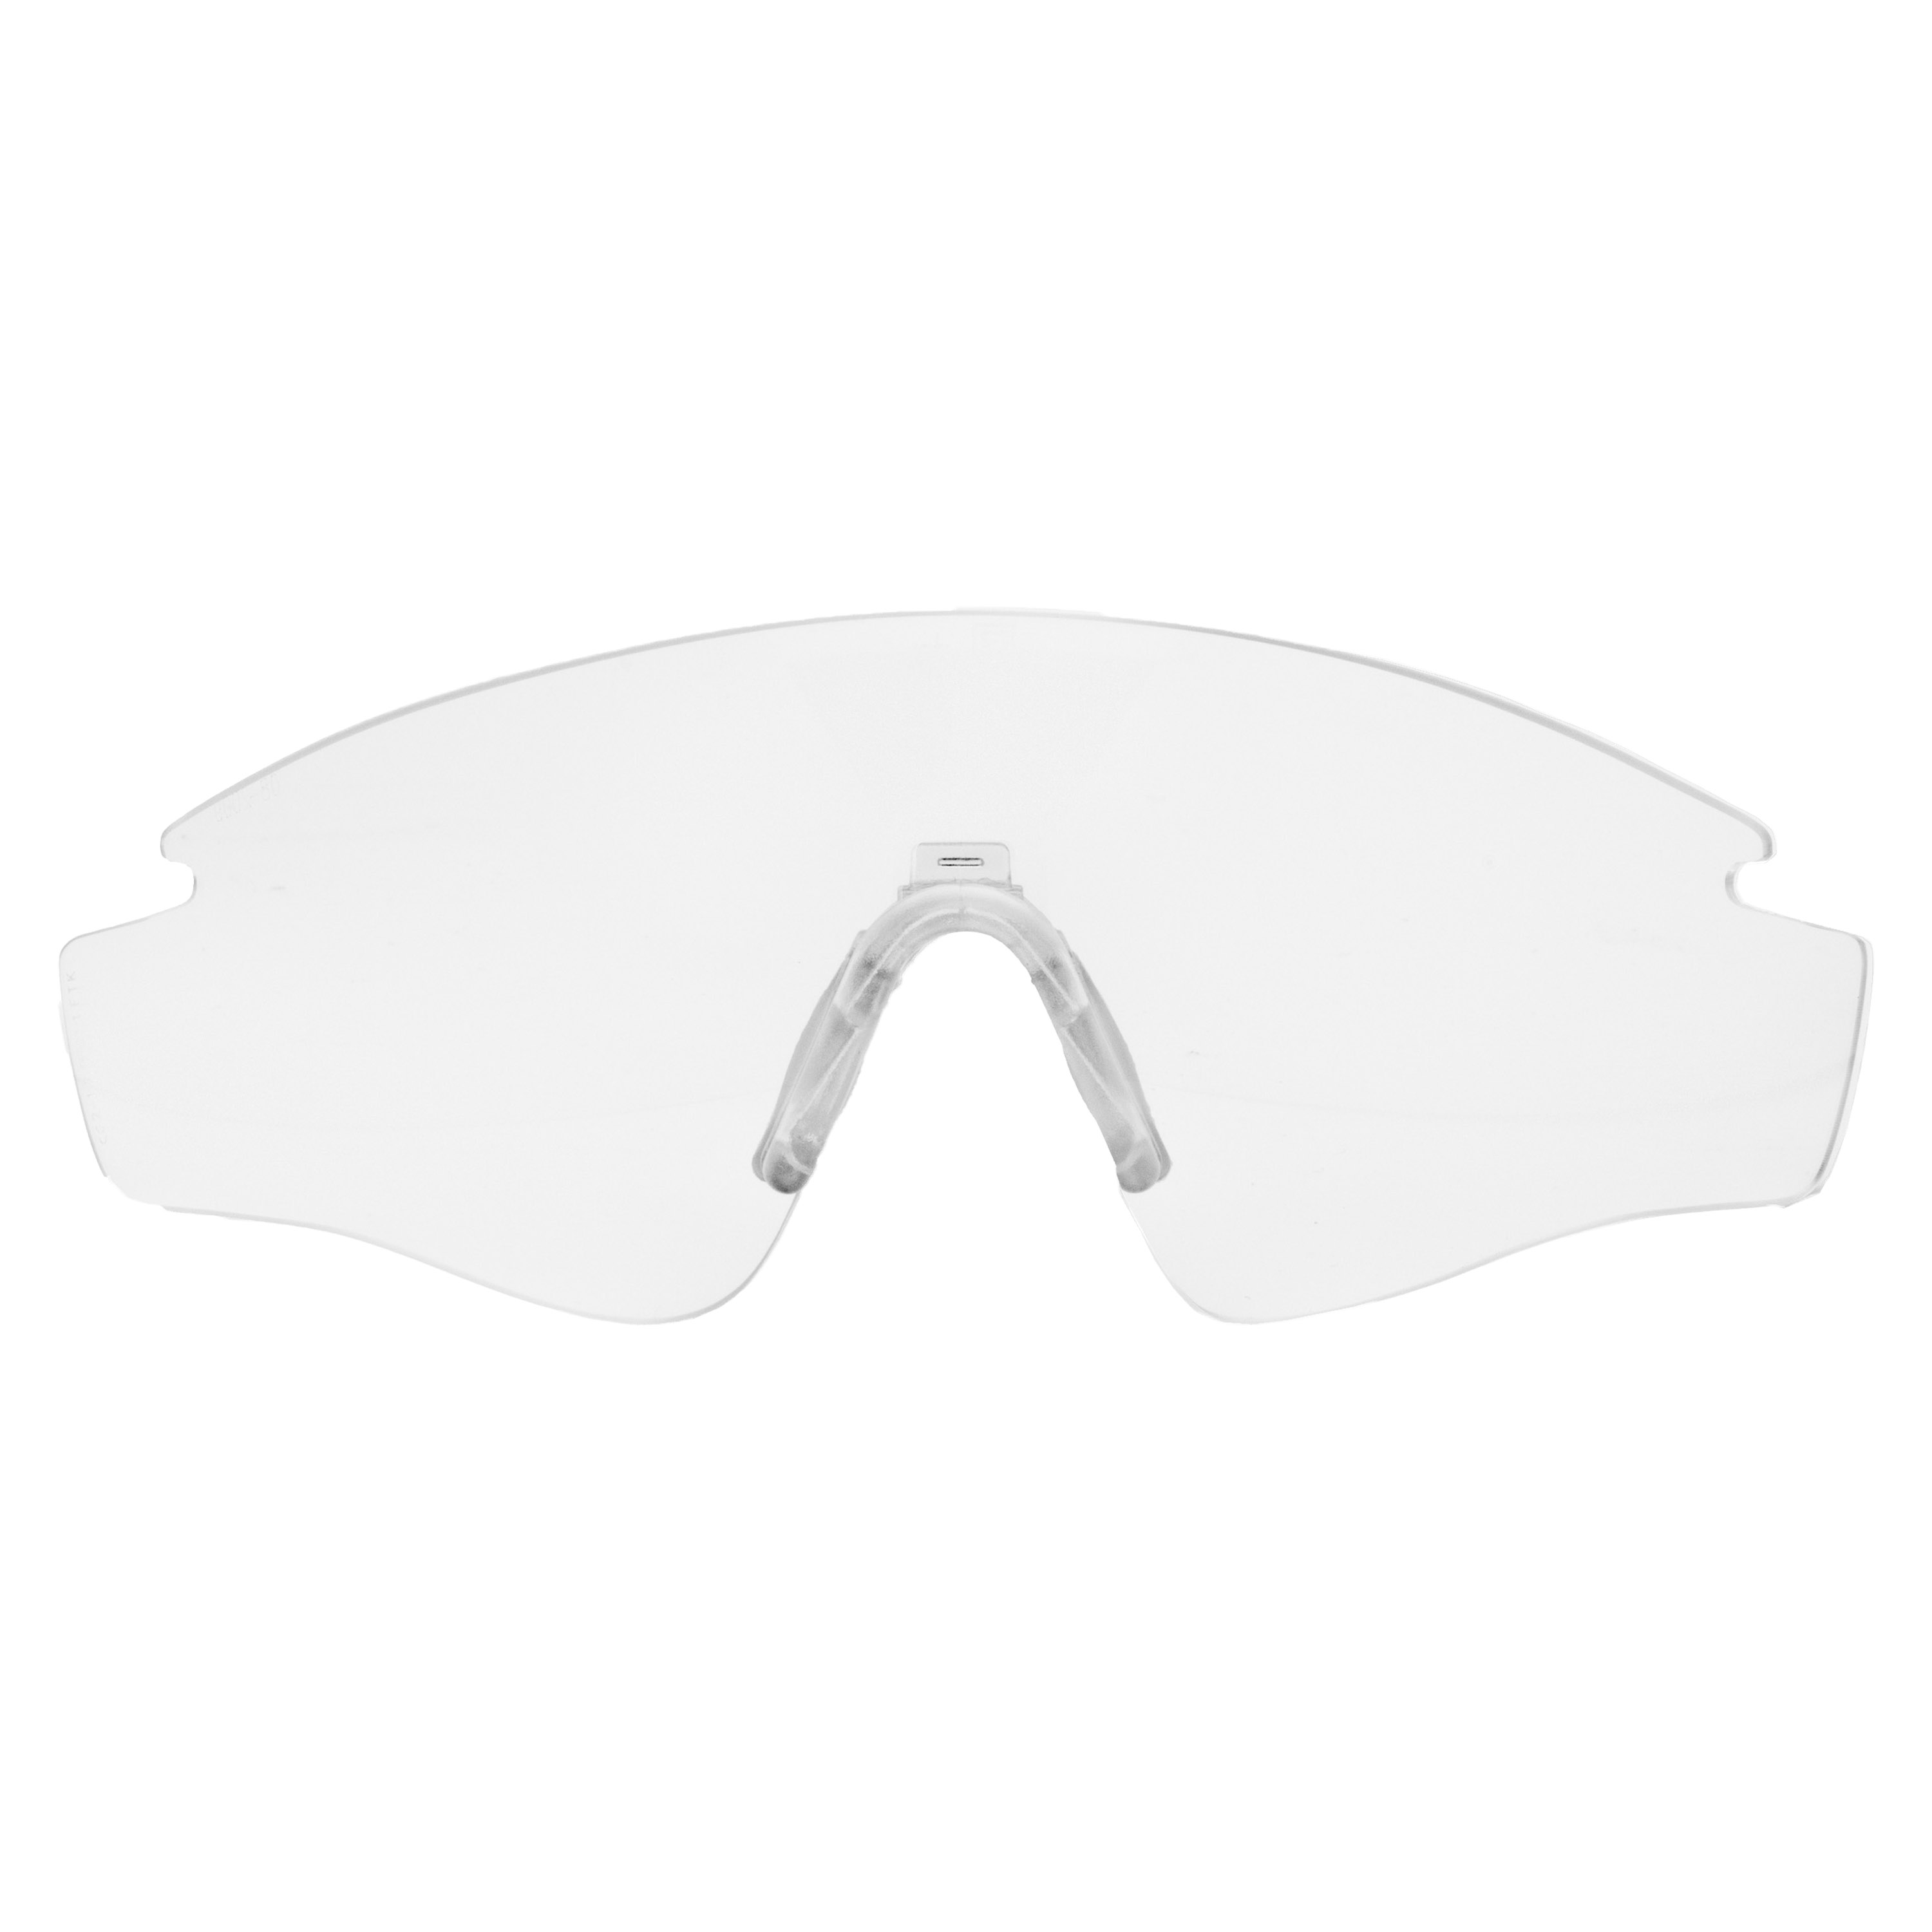 Replacement Lens Revision Sawfly Max-Wrap Small clear